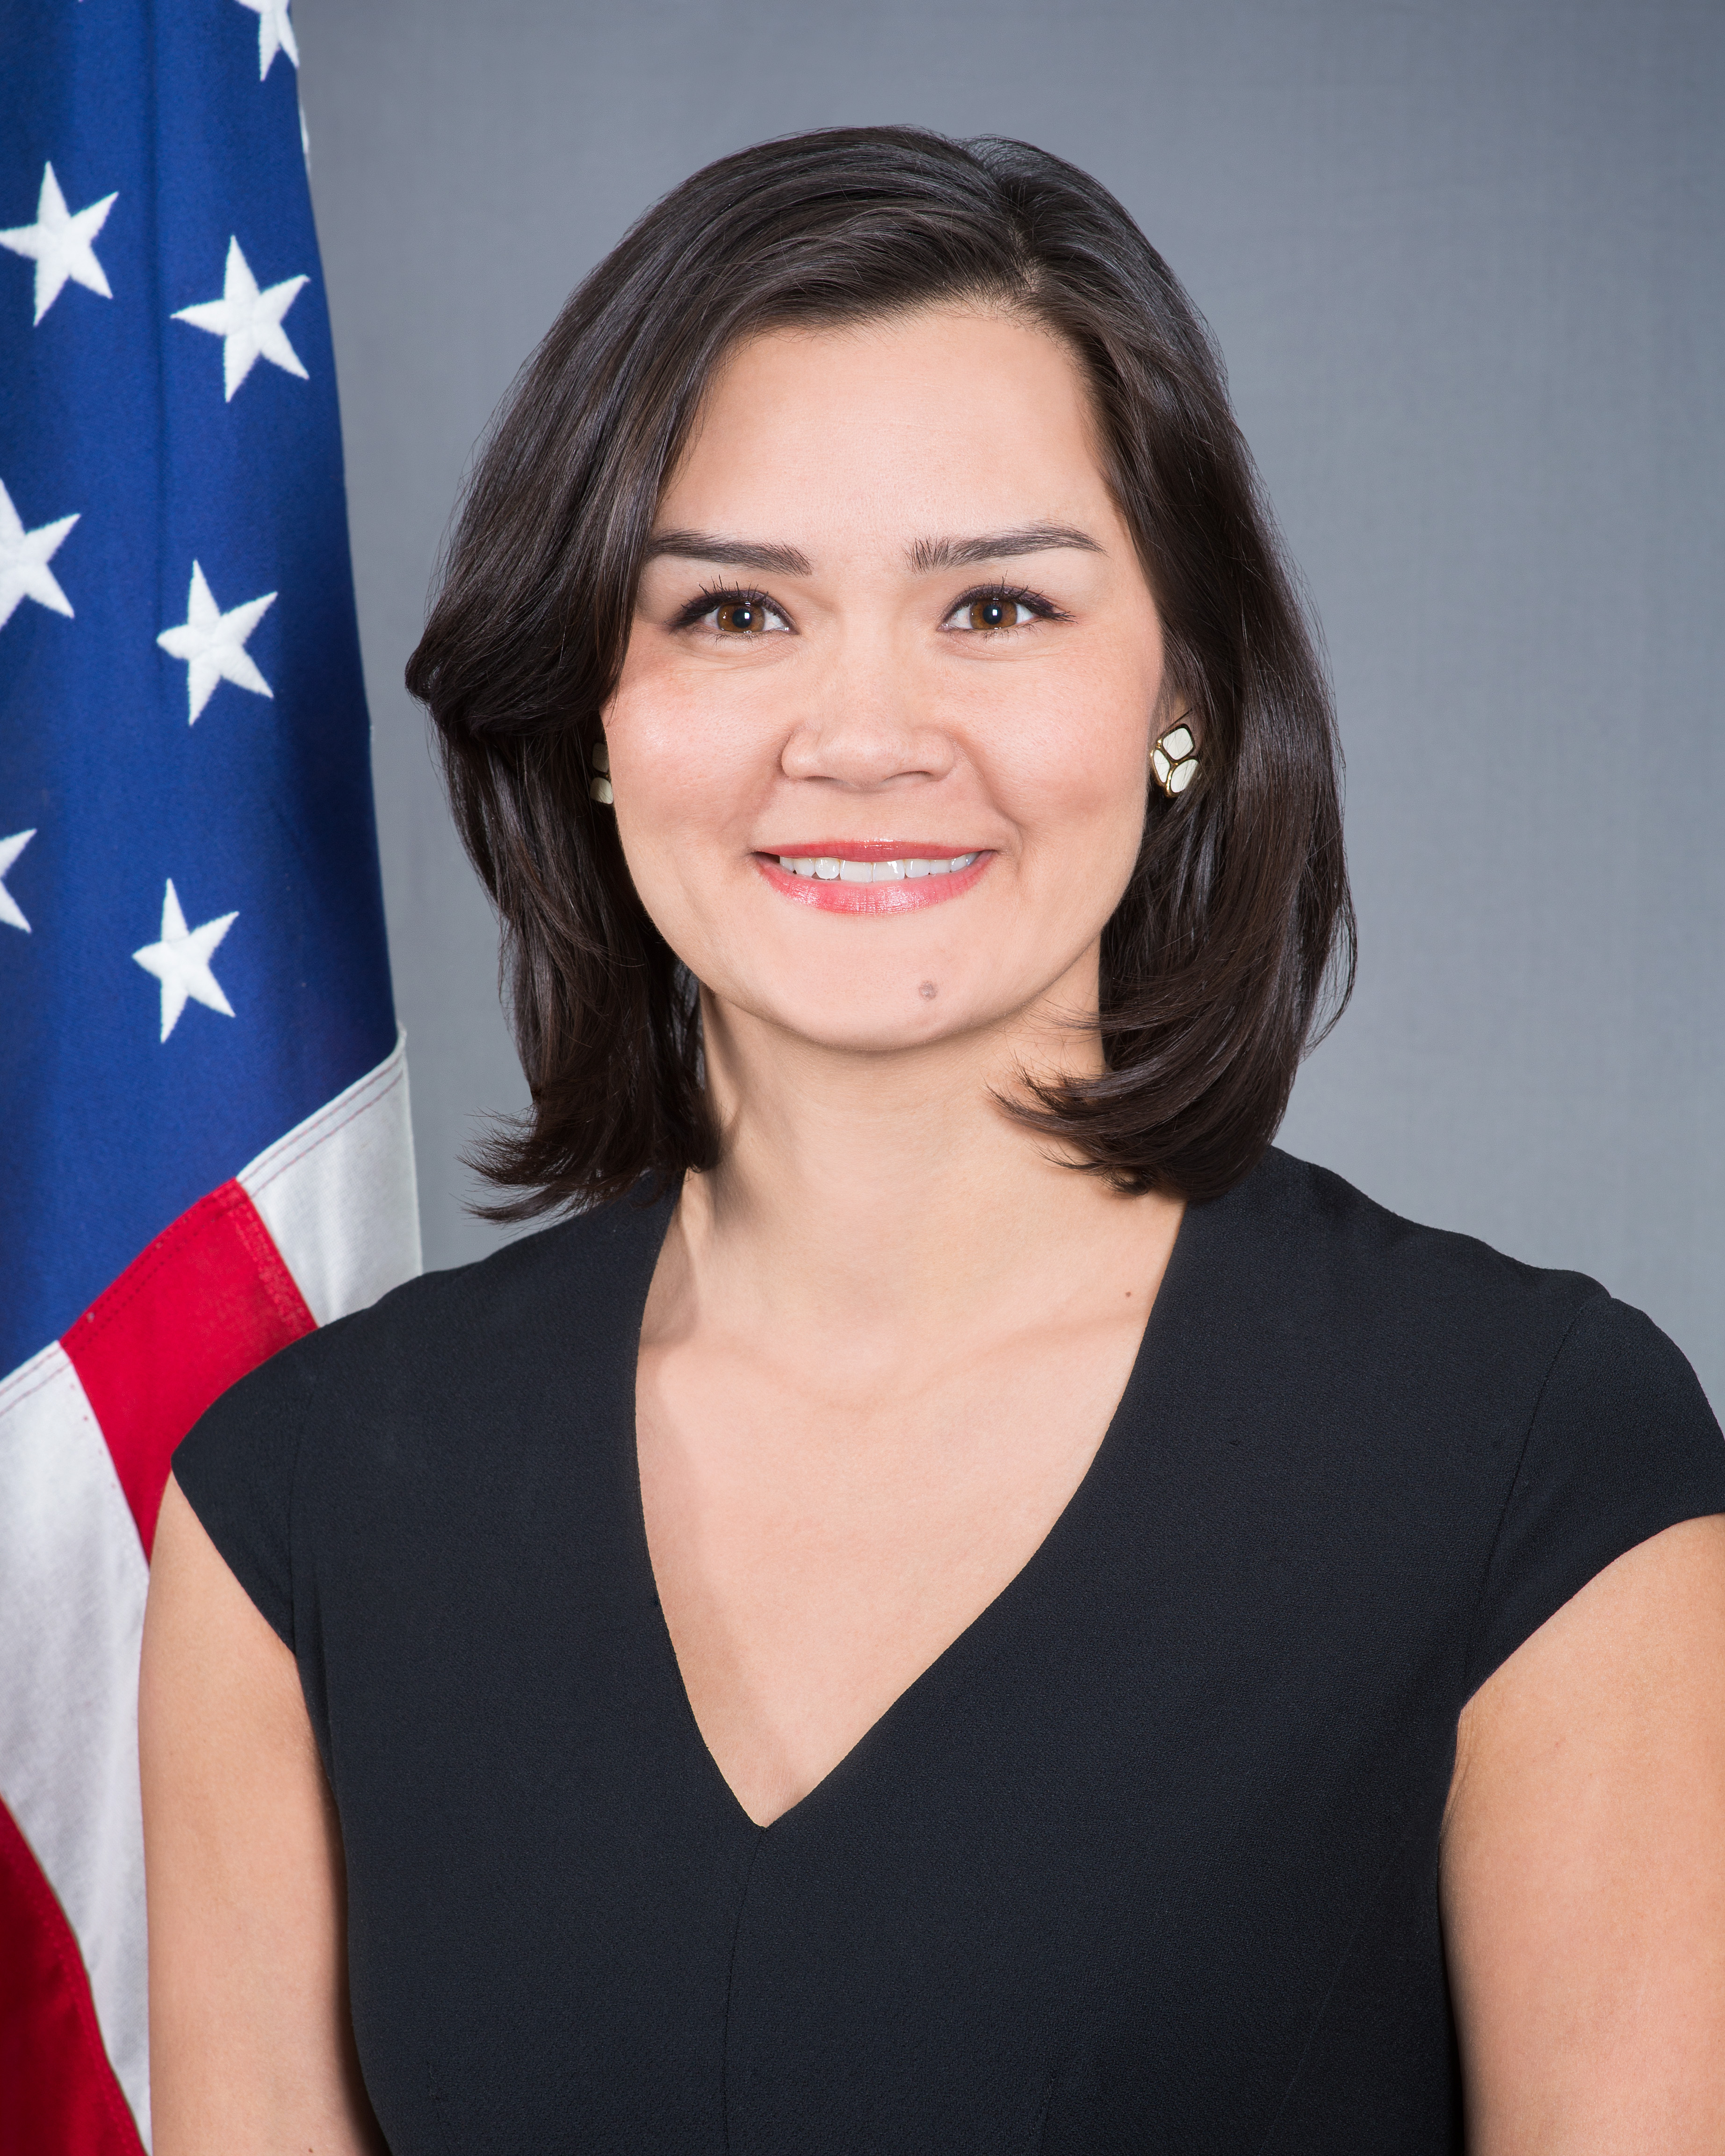 michelle secretary state giuda assistant affairs global diplomacy bureau wikipedia department guida under commons senior official